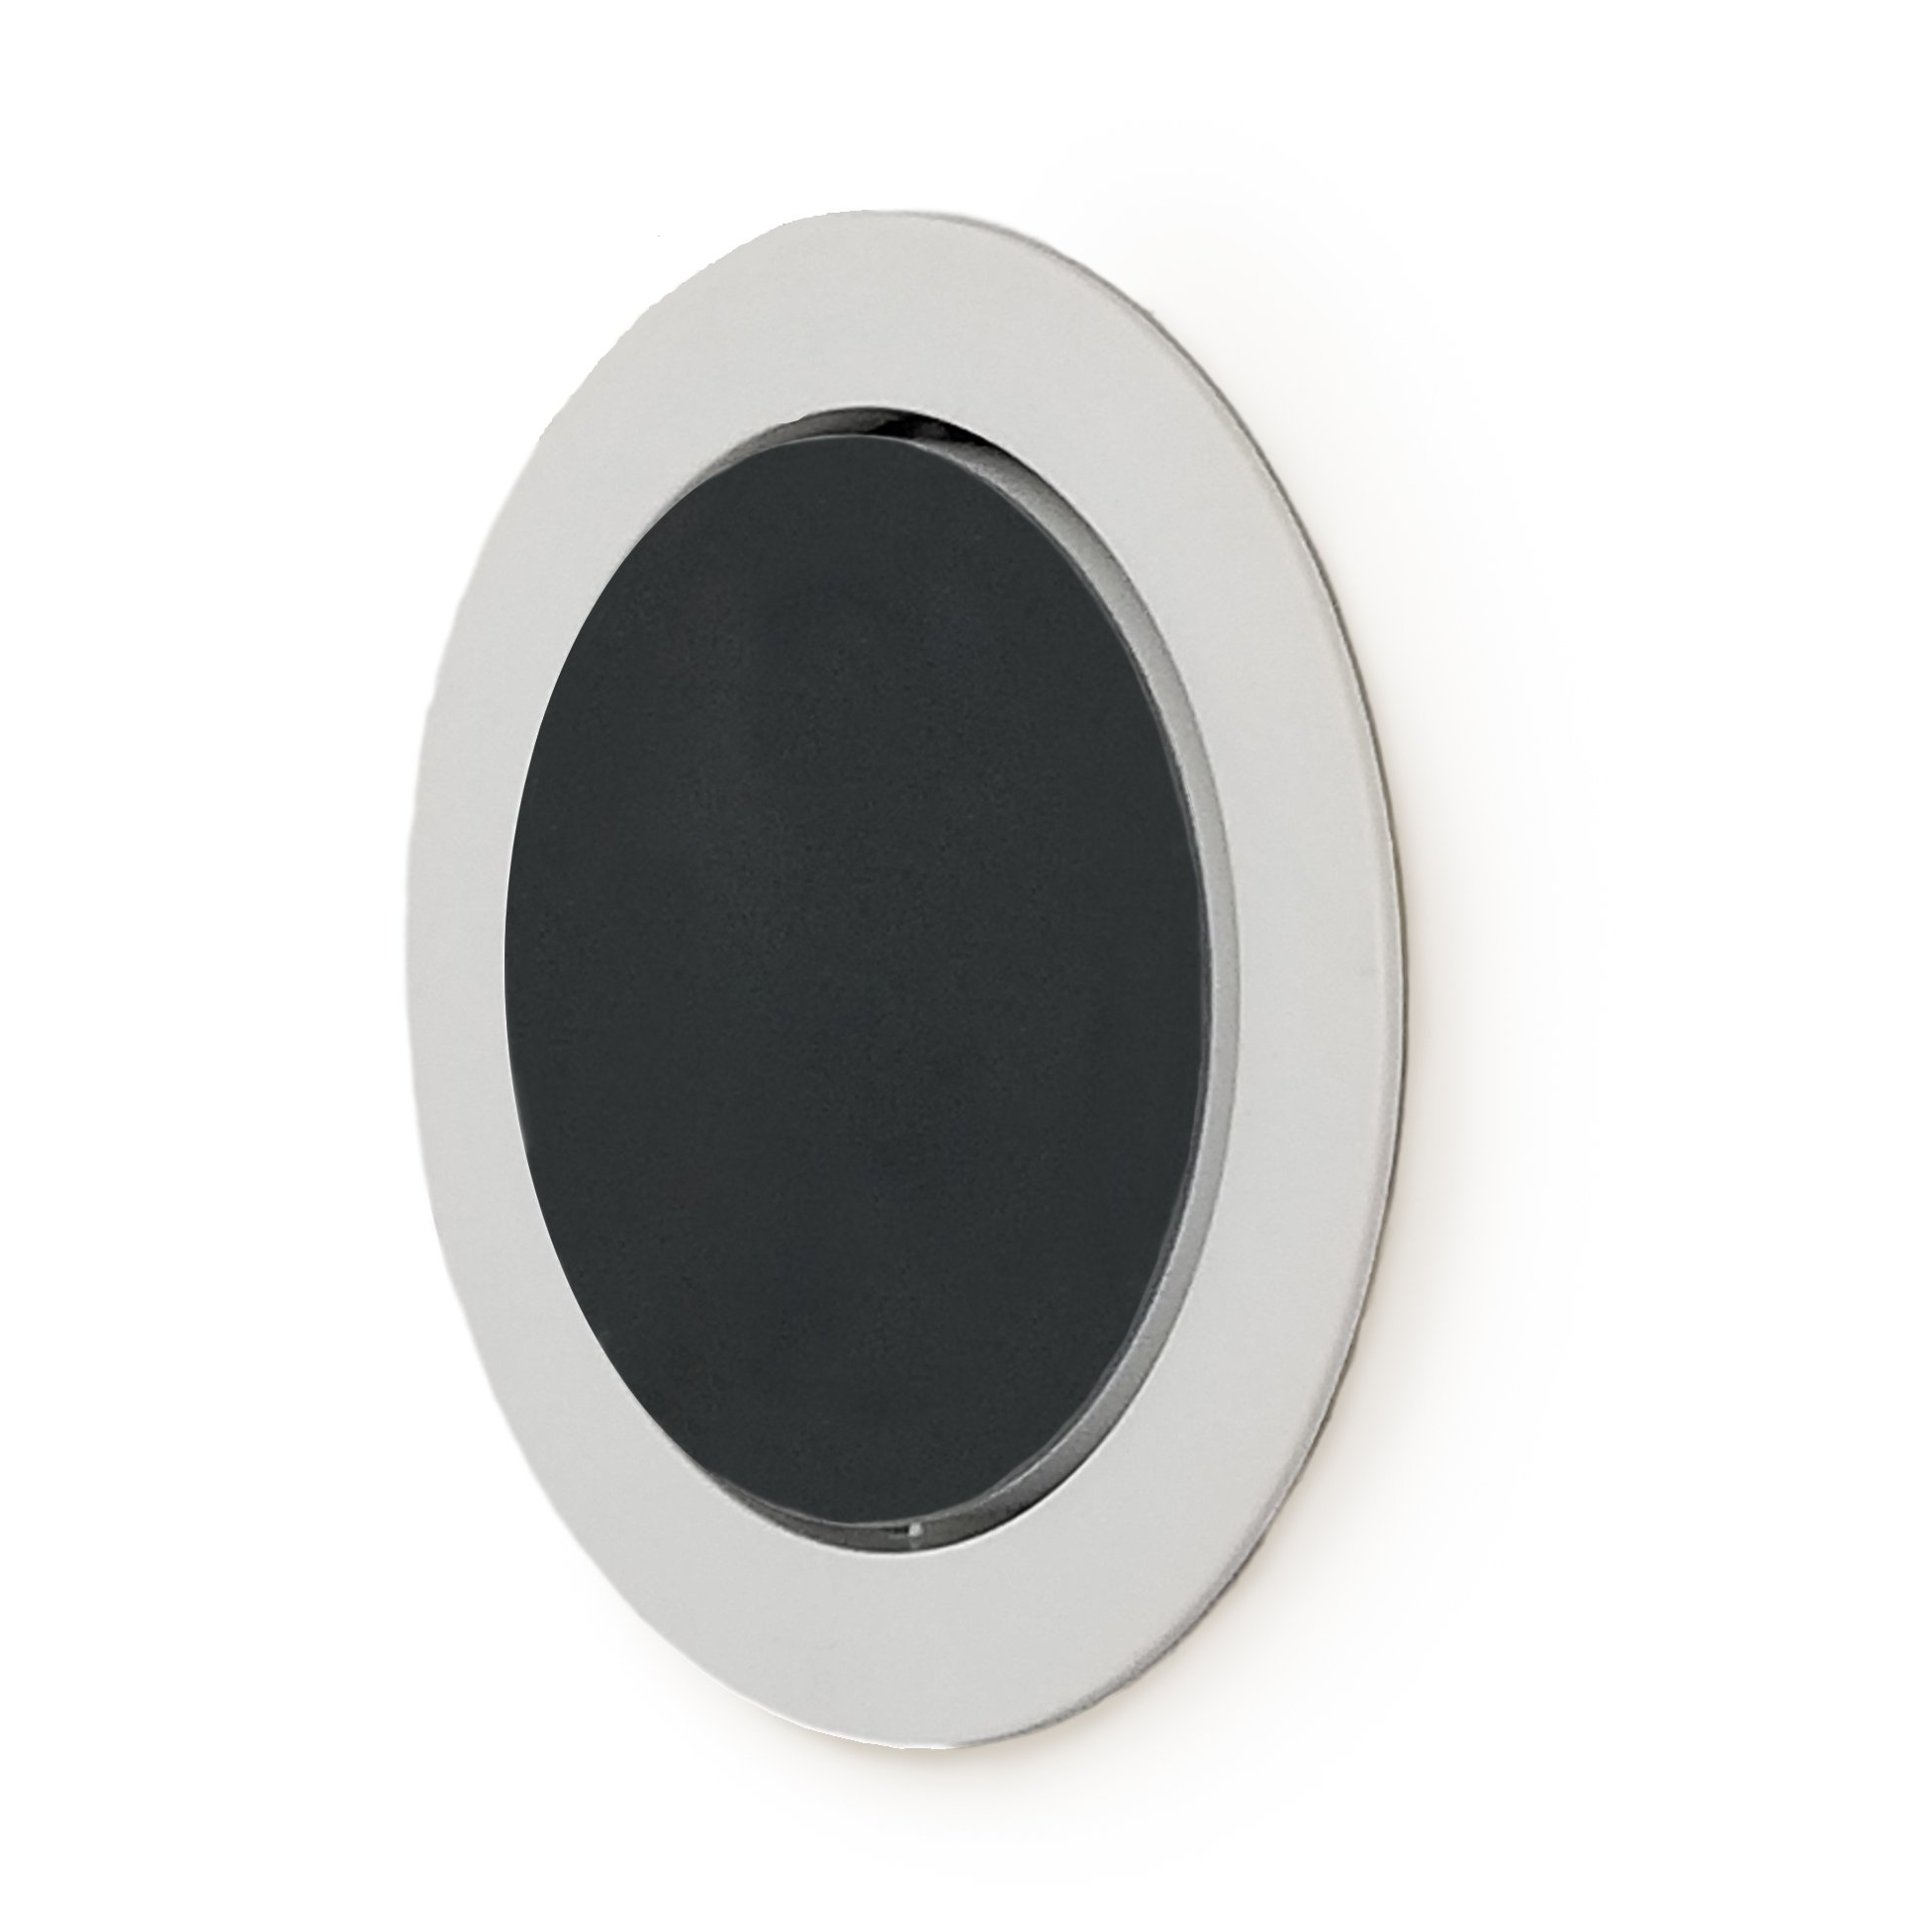 Mount Genie Flush Mount - Built-in Wall or Ceiling Mount for Round Puck Speakers with Included Wiring (1-Pack) by Mount Genie